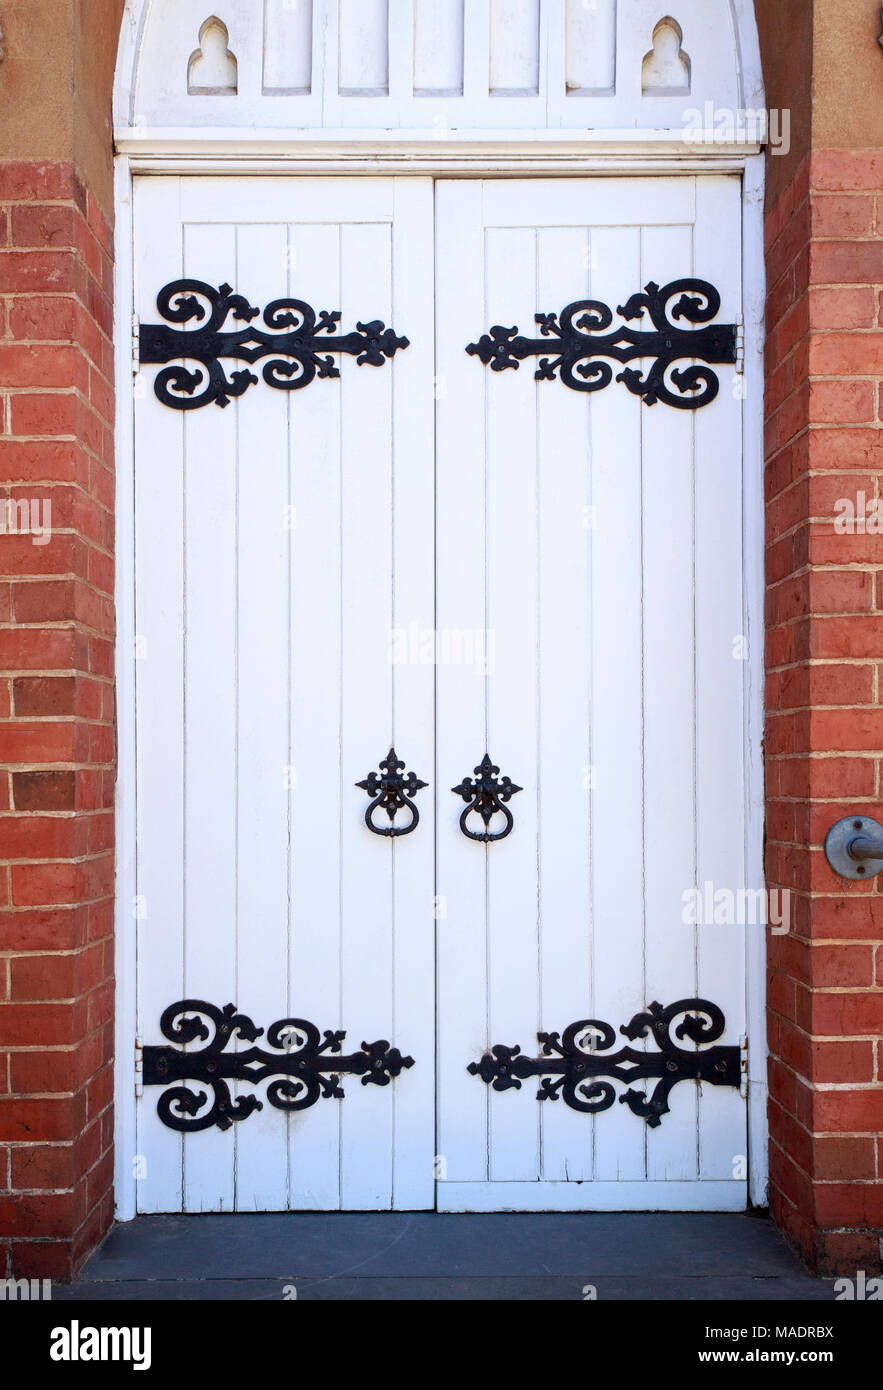 Detail of the door of the St John Uniting Church in Narrandera, New South Wales, Australia - Stock Image